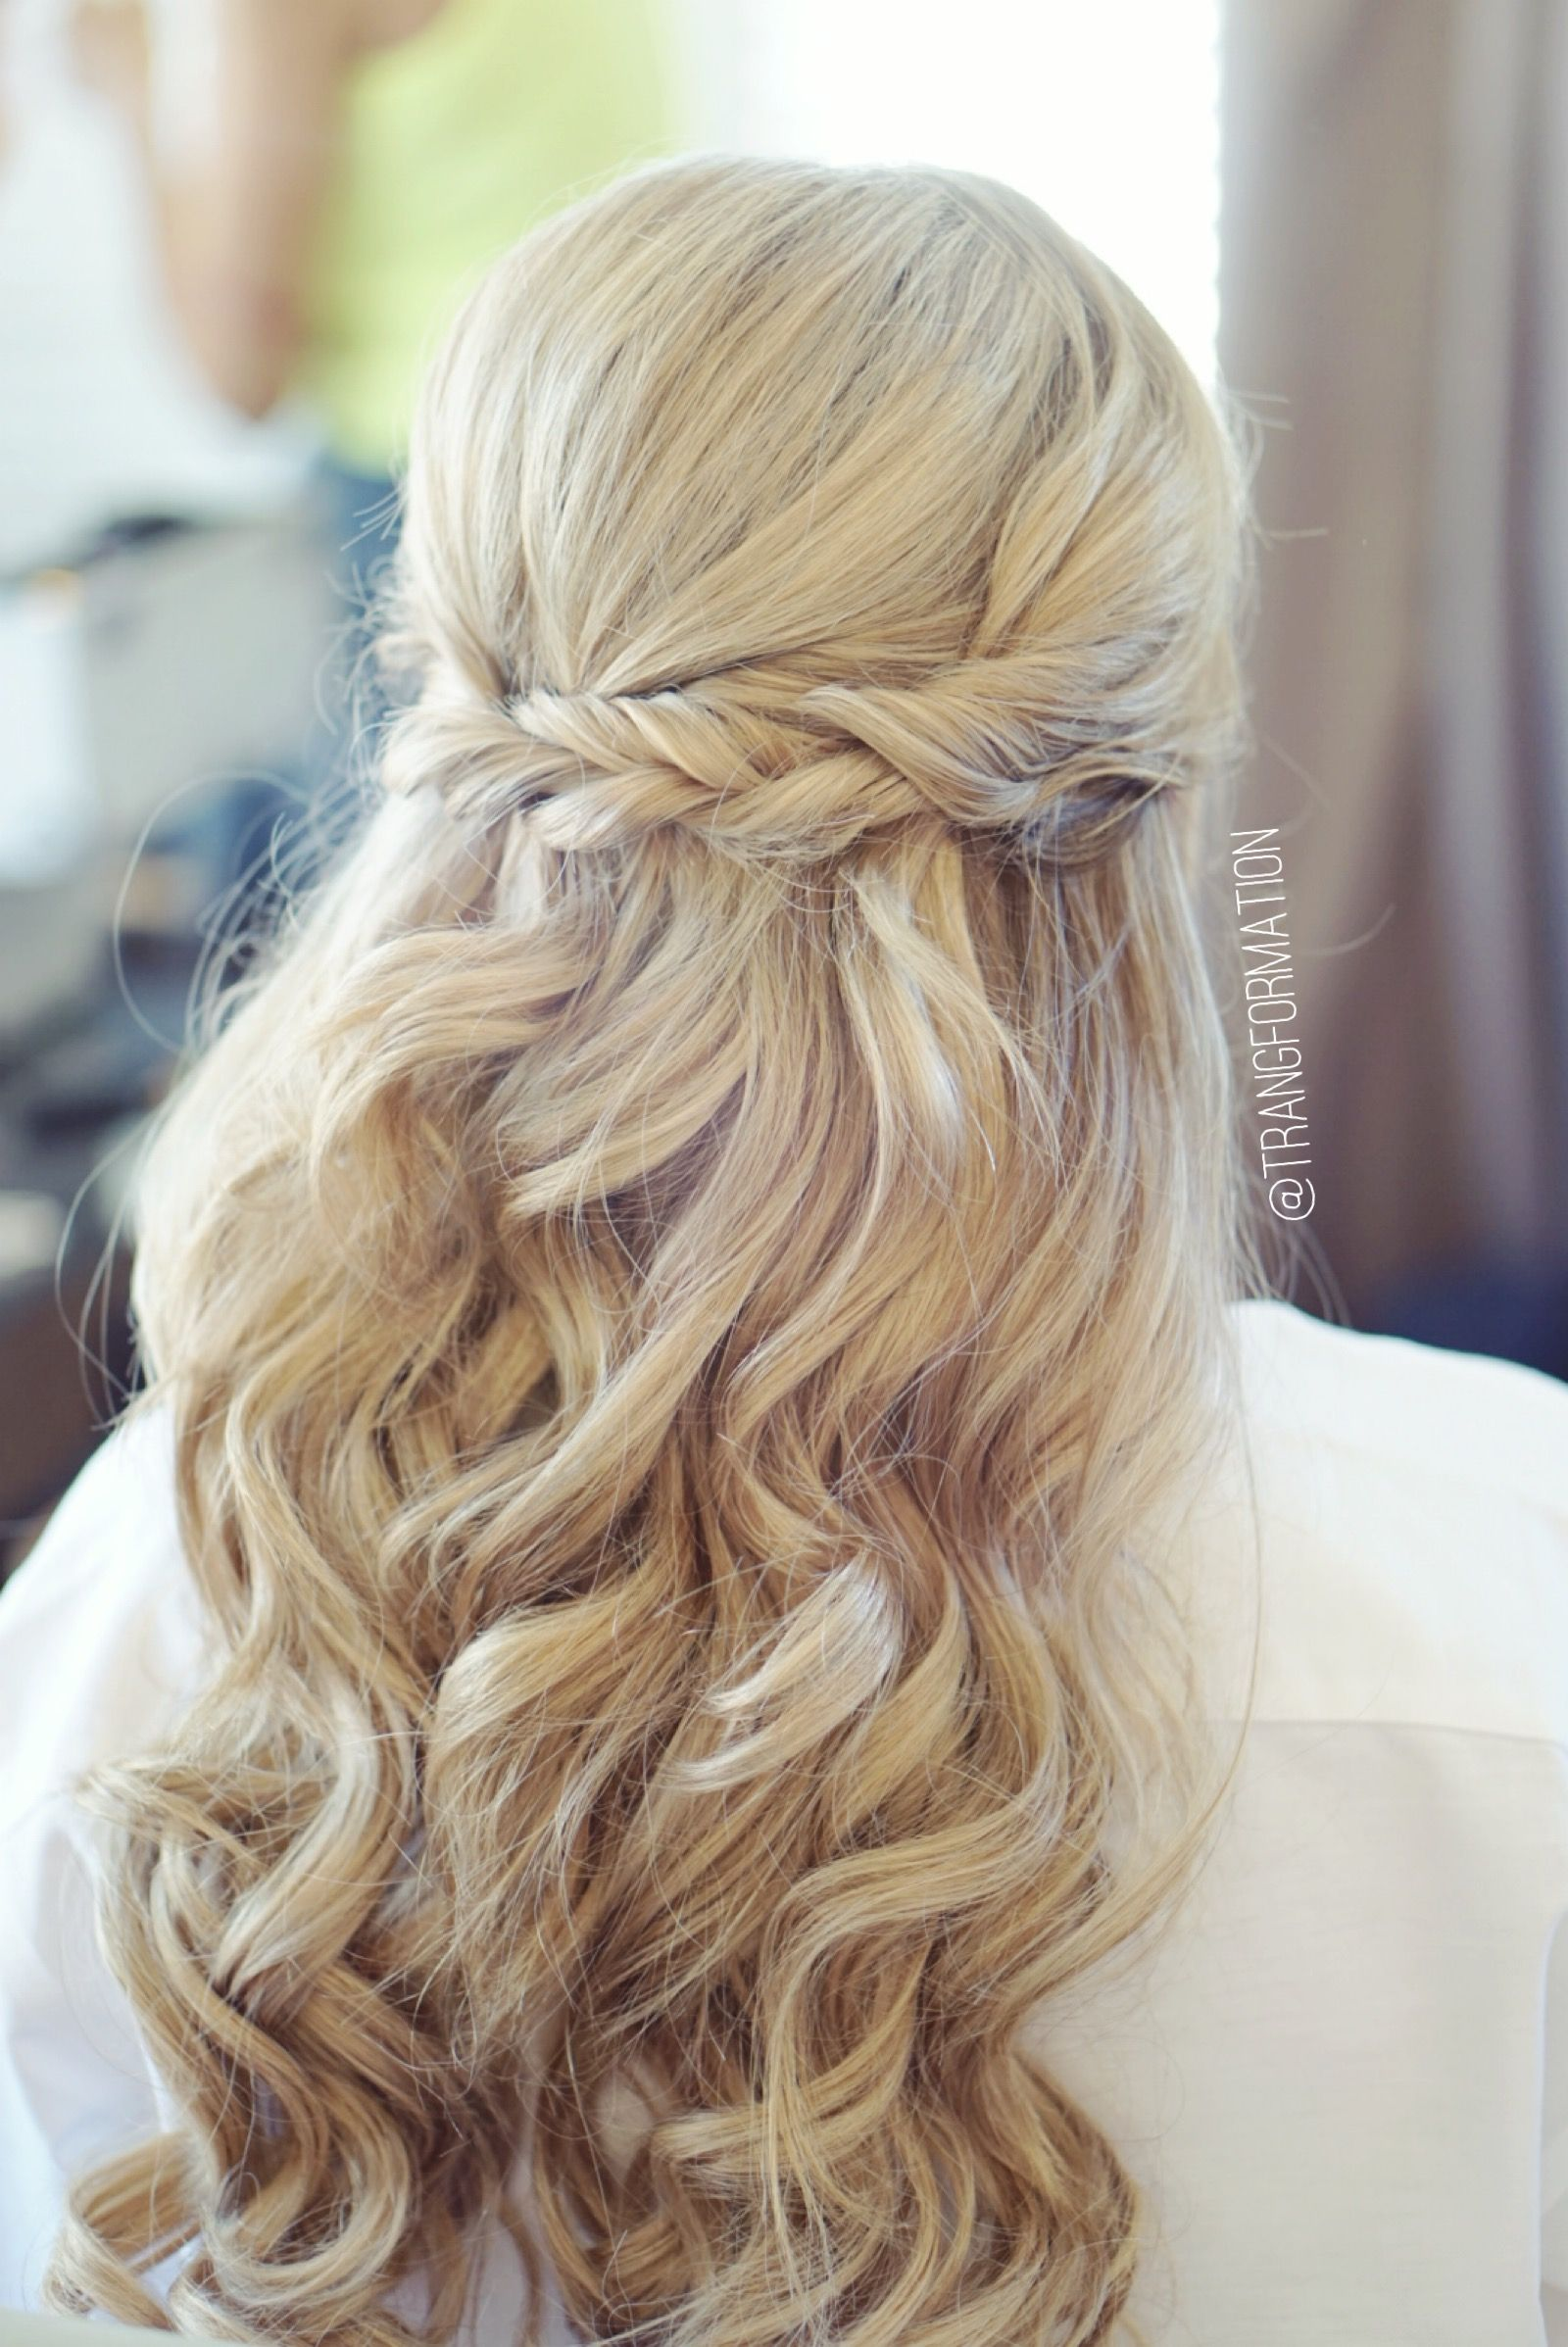 Half Up Half Down Bridal Hair Wedding Hair Bride Wedding Hairstyles Hair Styles Prom Hair Down Long Hair Styles